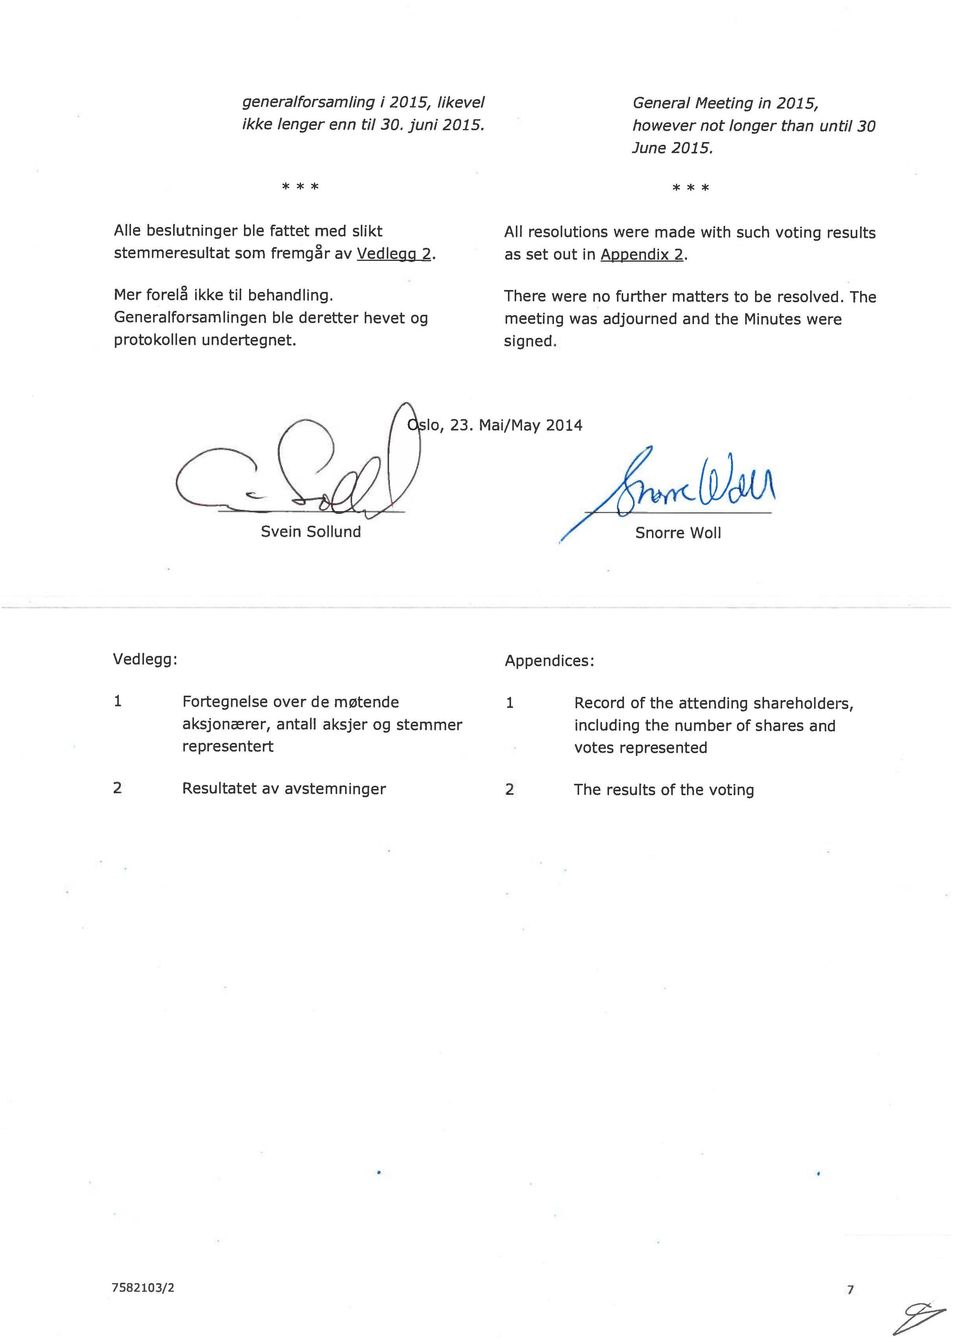 Generalforsamlingen ble deretter hevet og protokollen undertegnet. There were no further matters to be resolved. The meeting was adjourned and the Minutes were signed. 23.